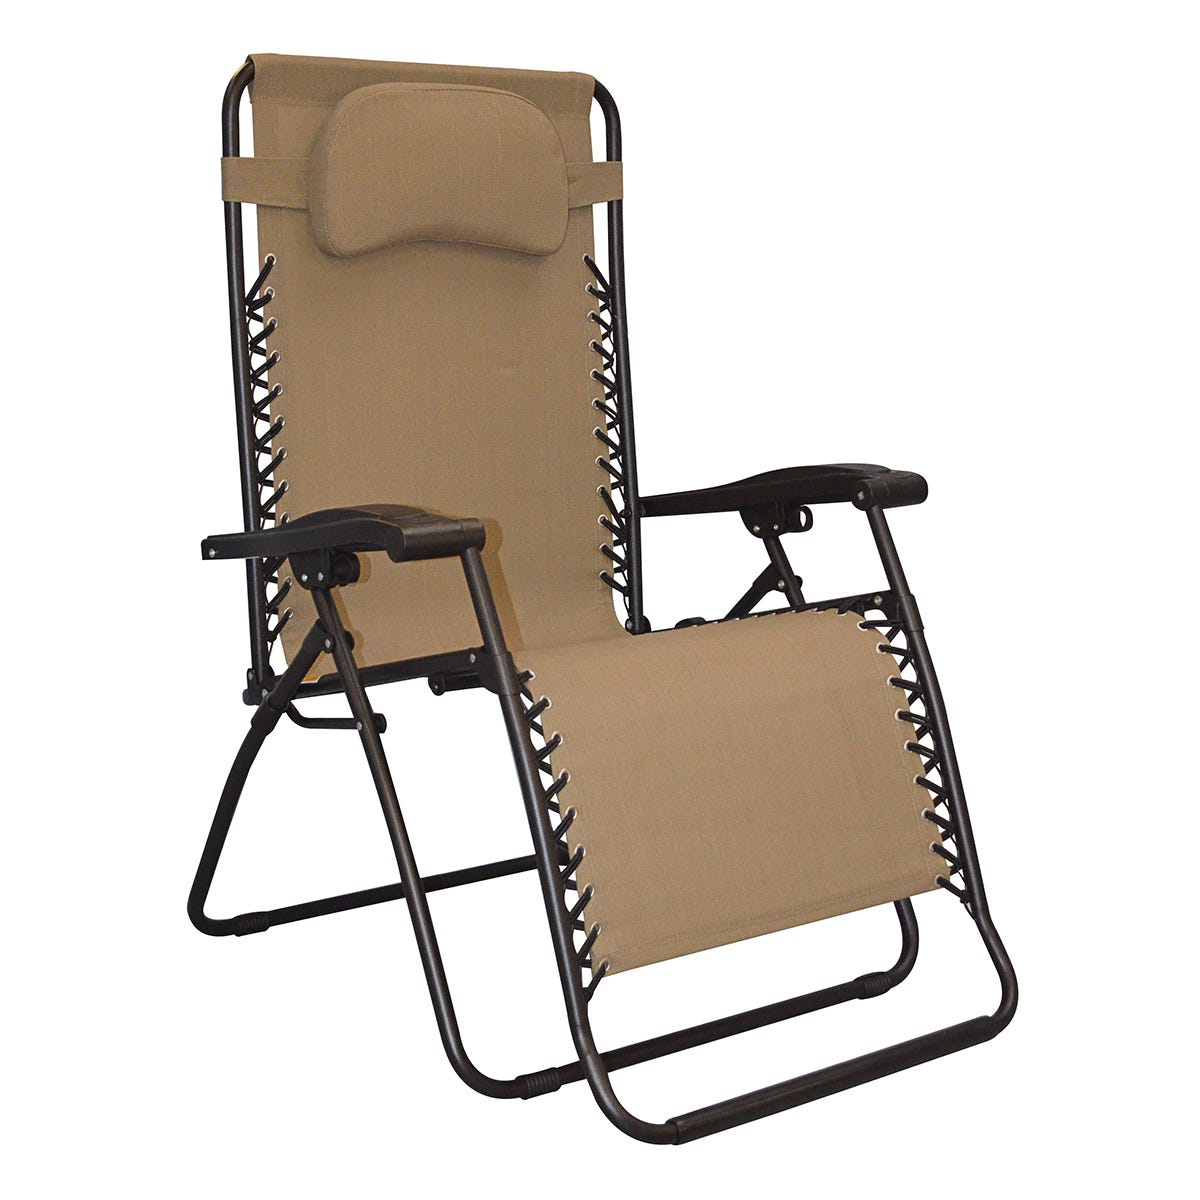 Ultimate Folding Recliner From Sportys Preferred Living